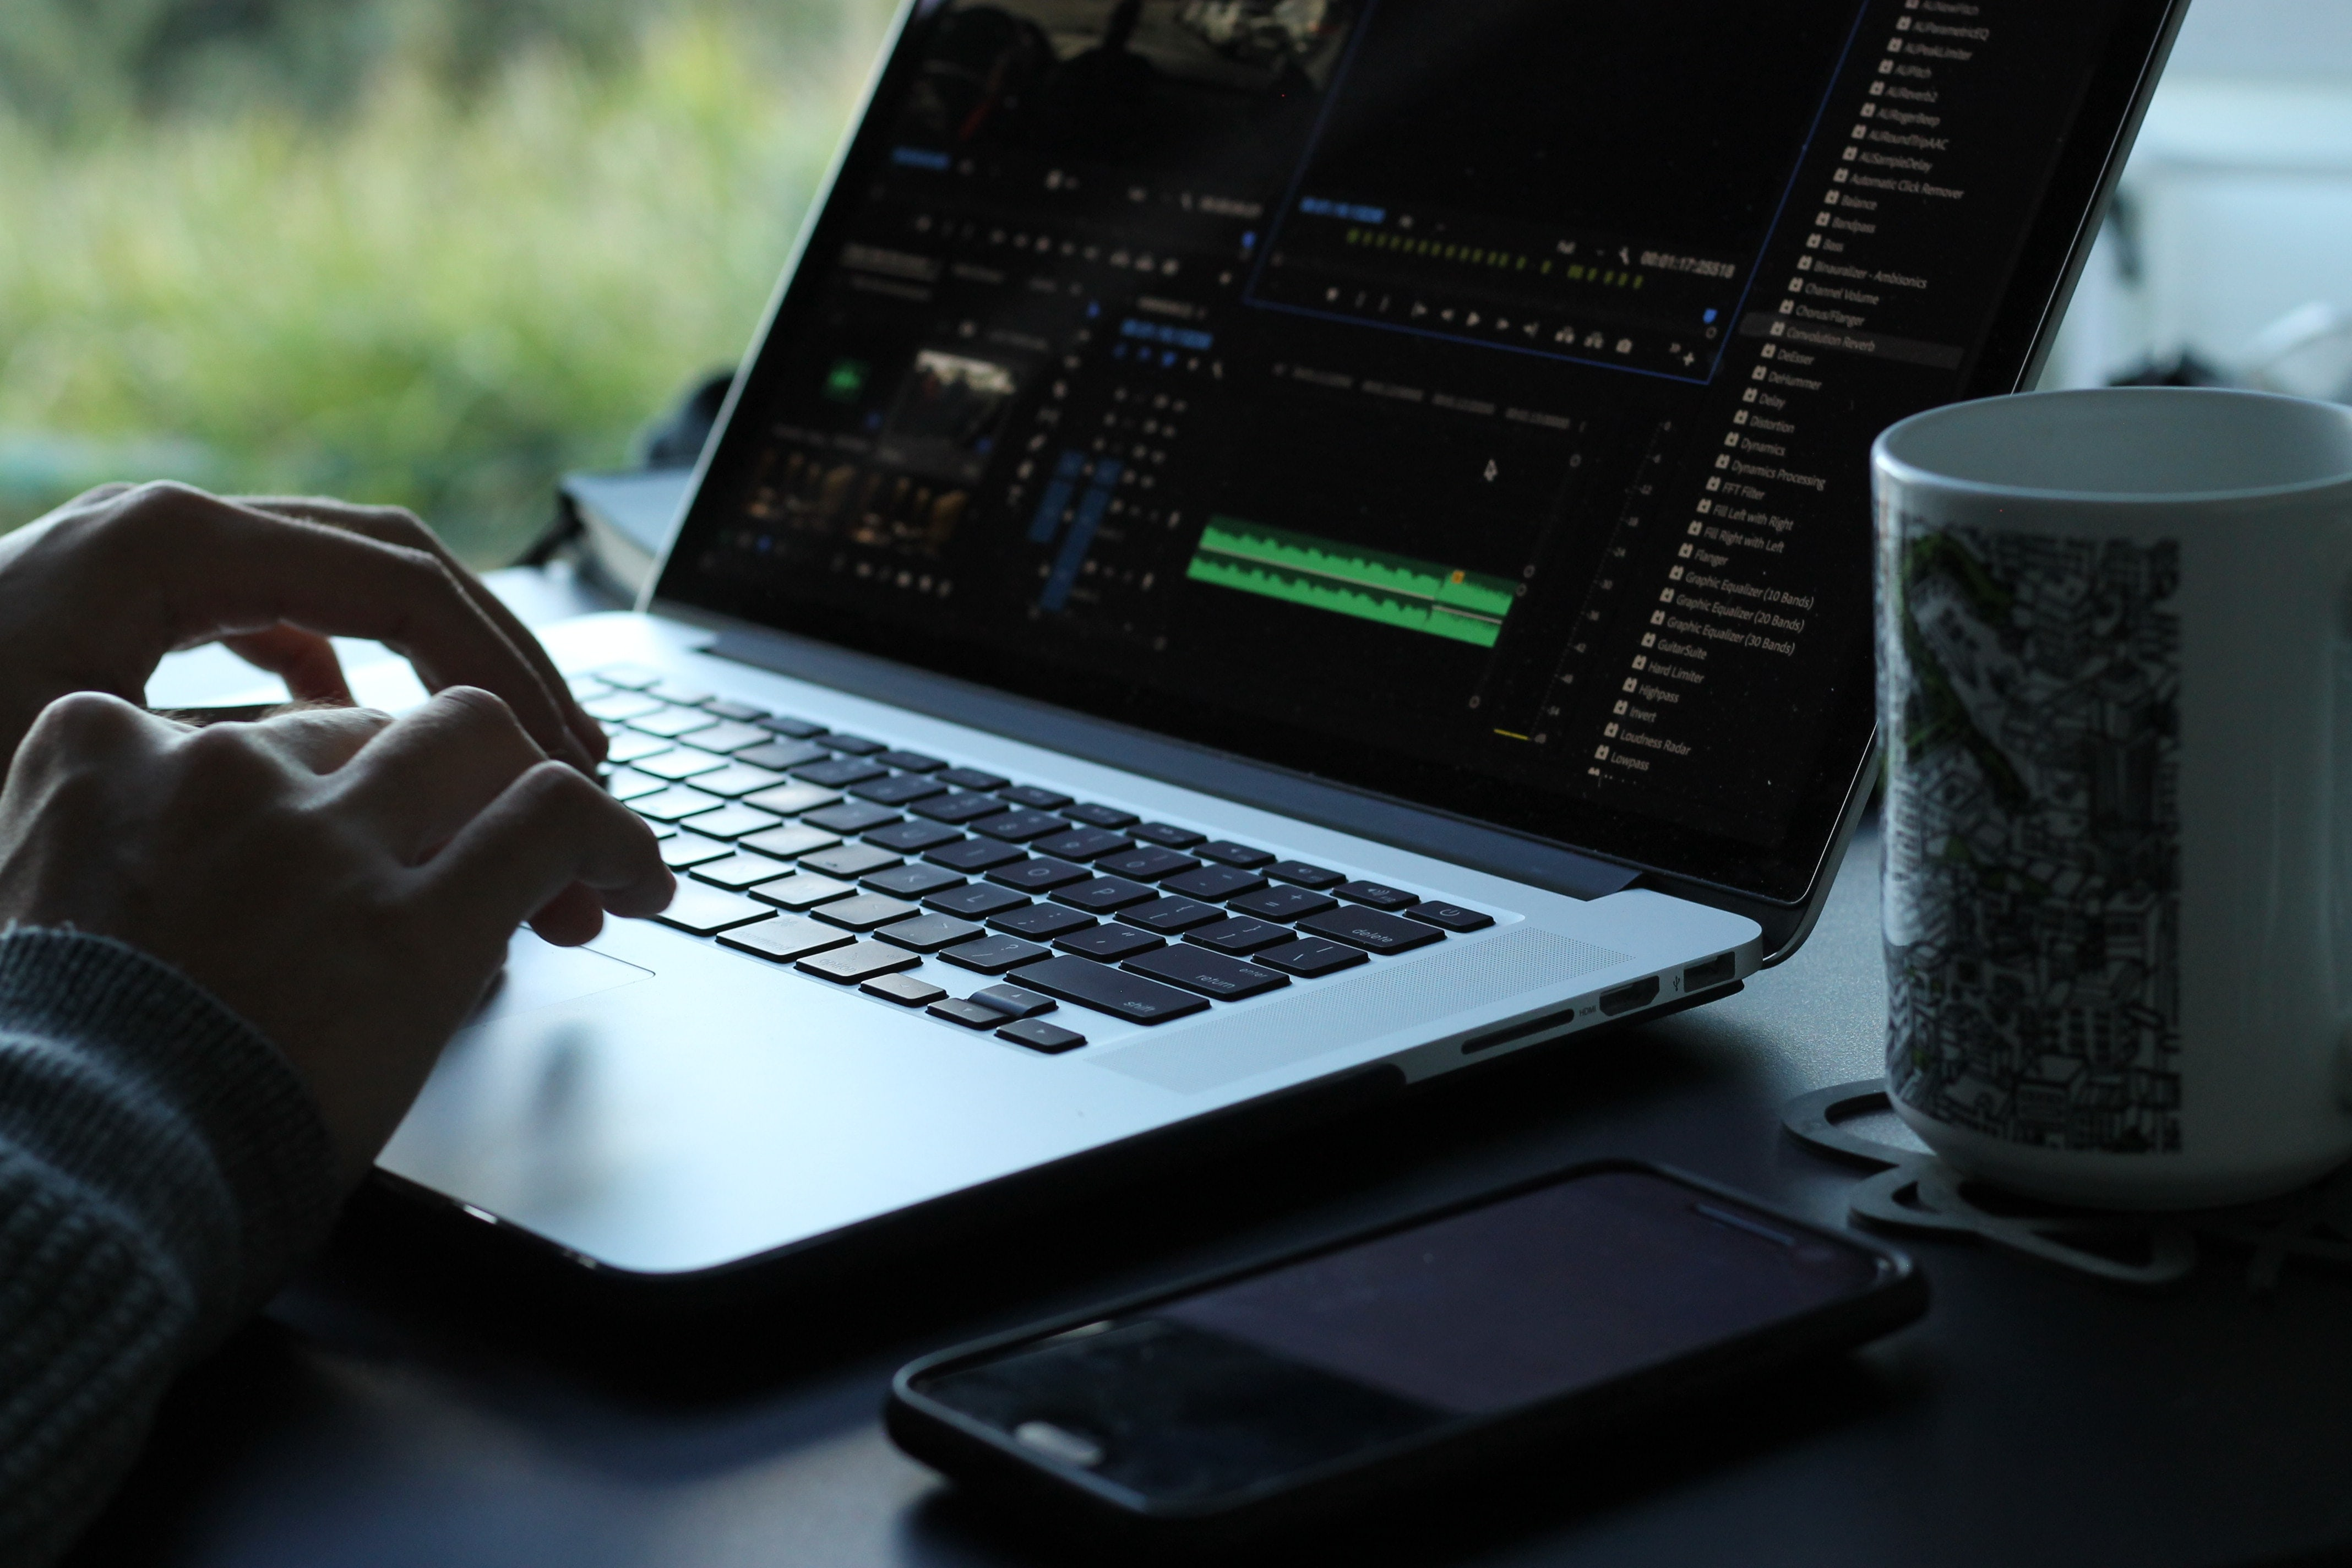 The best tools for video editing